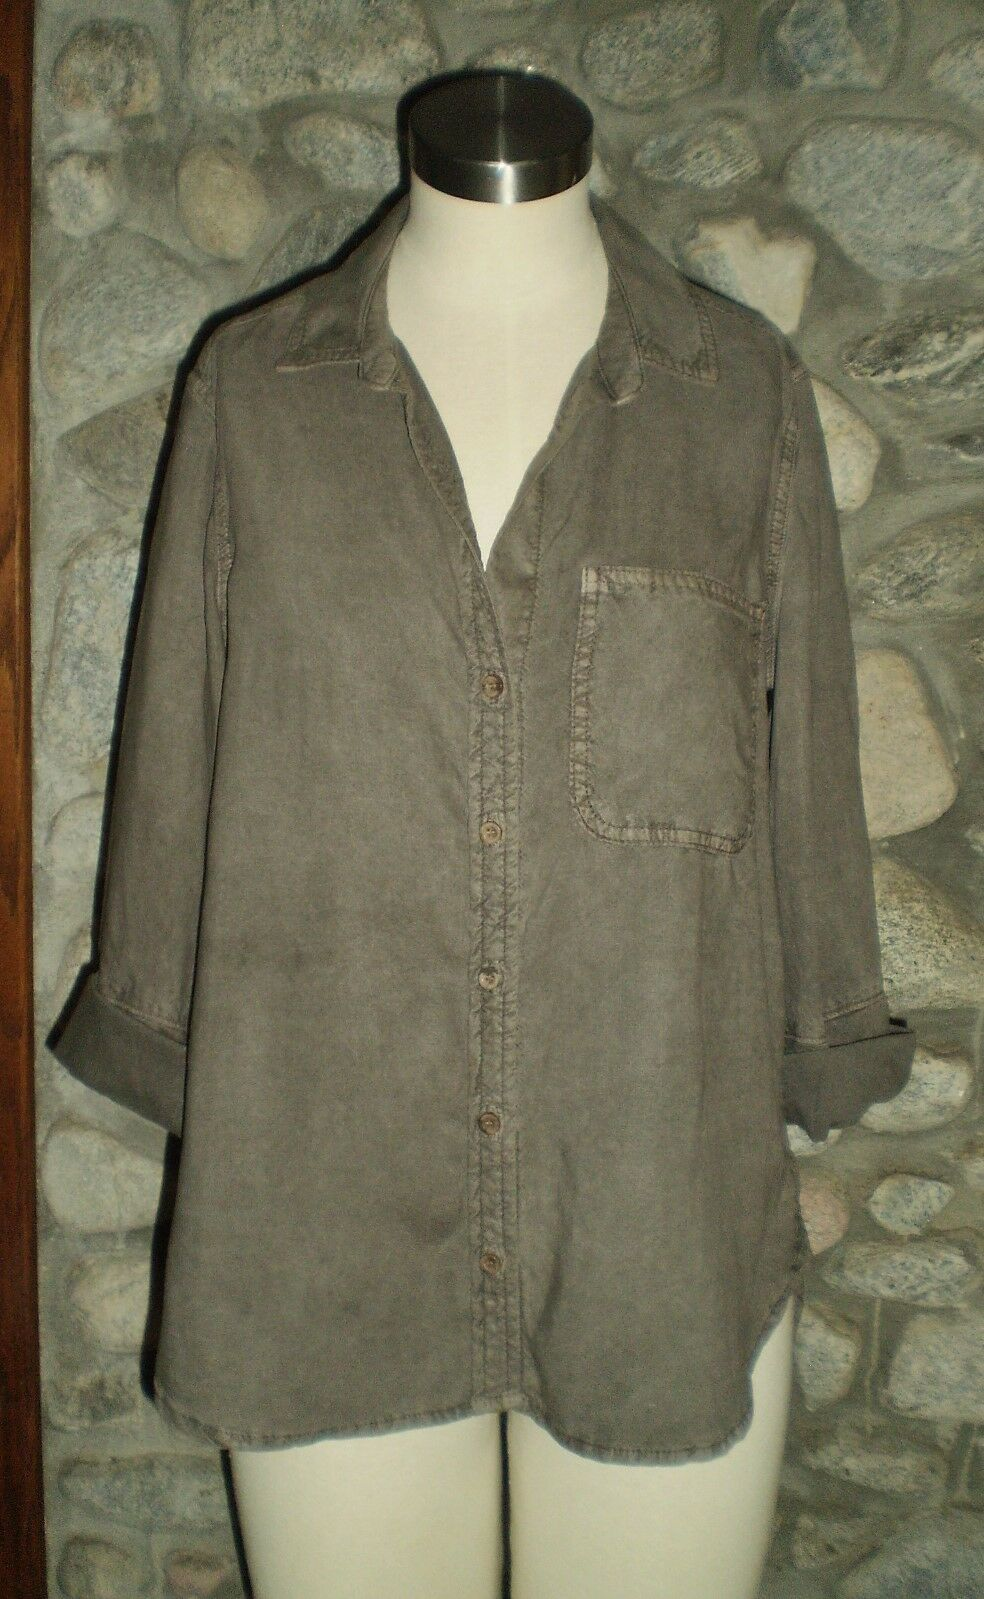 BELLA DAHL 3 4 Sleeve Button Front SHIRT-Small OLIVE GREEN DRAB Tencel NWT